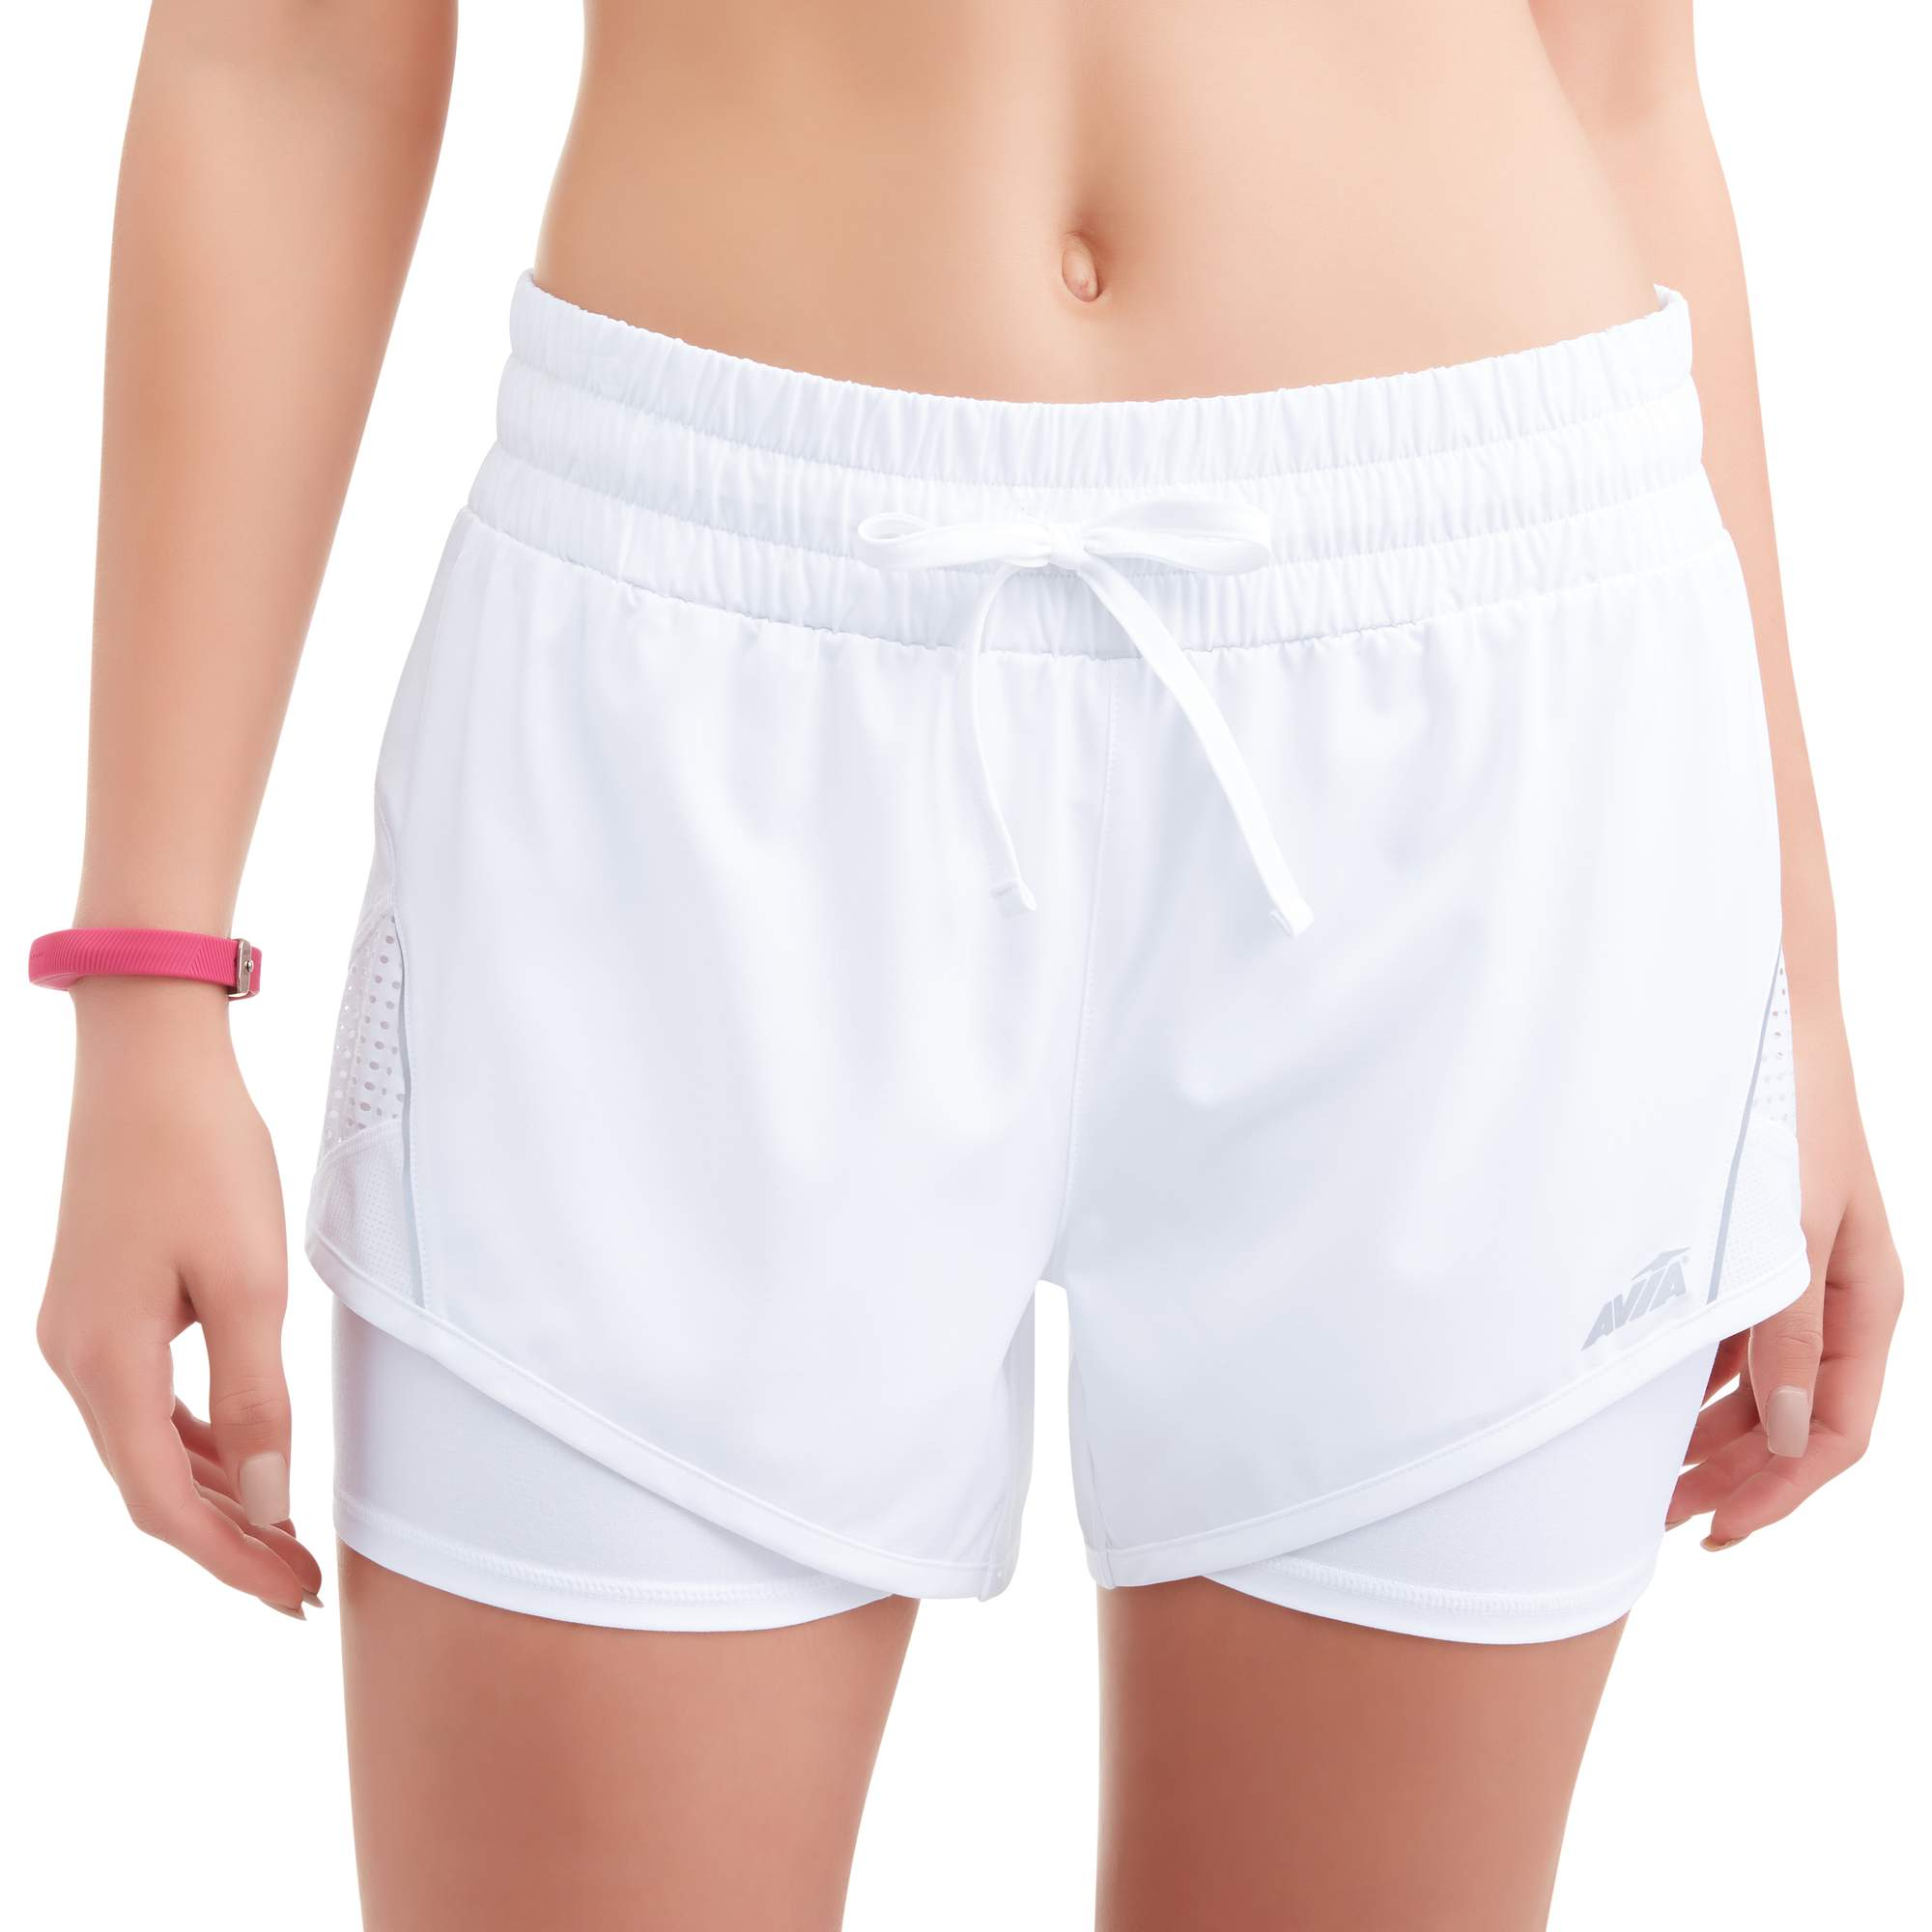 Women's Active 2Fer Stretch Woven Running Short With Mesh Detail